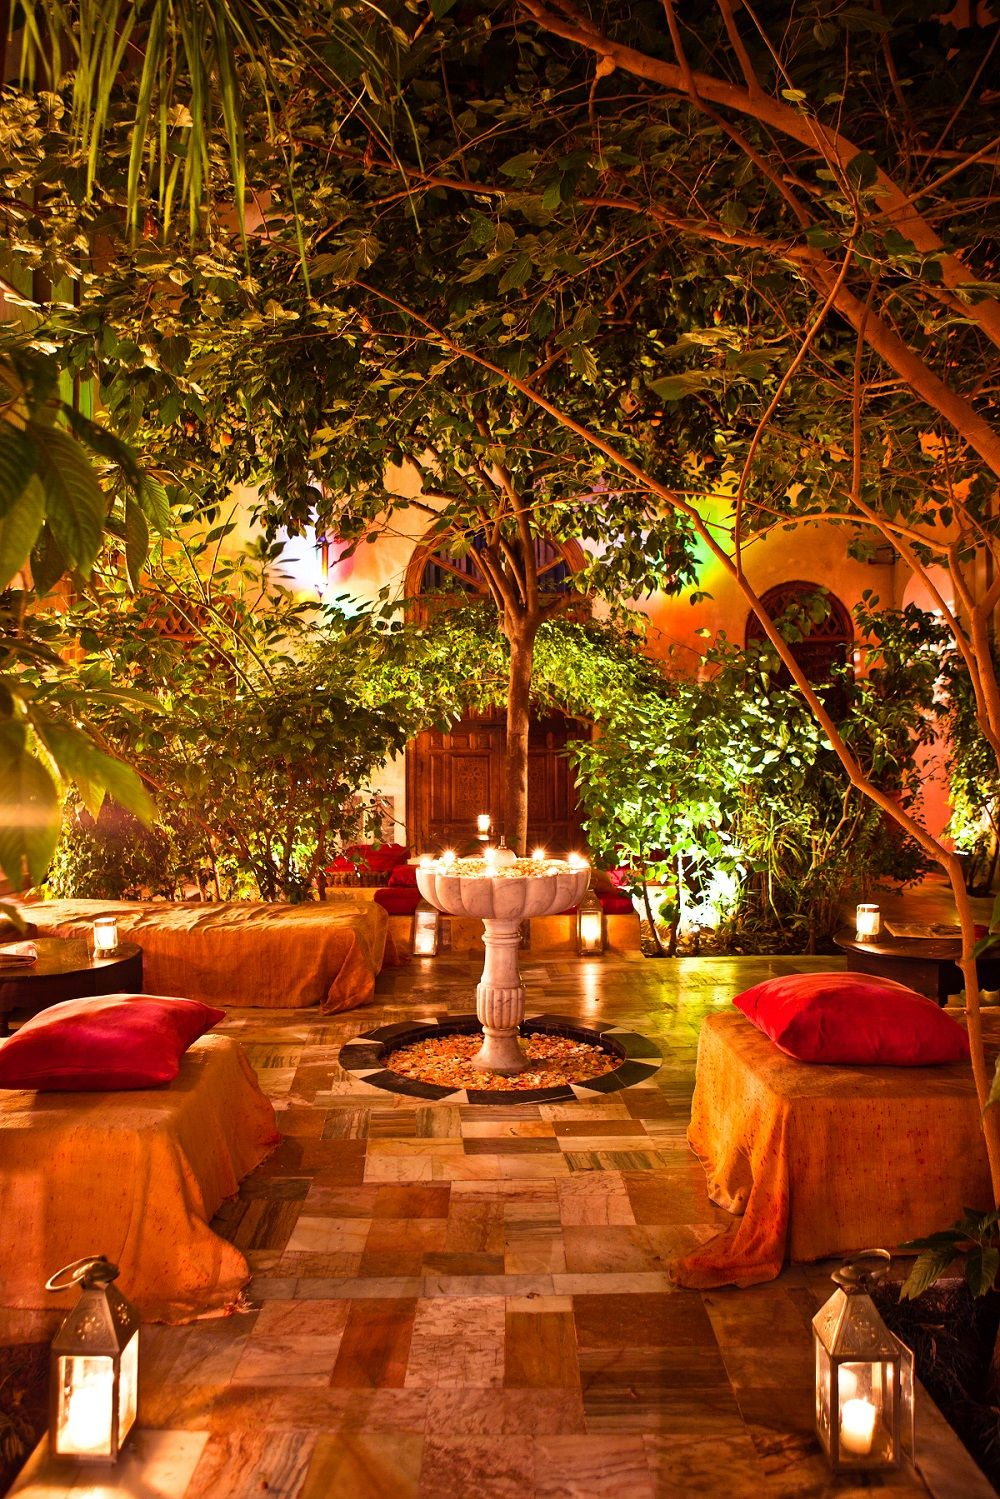 Moroccan Courtyard. Perfect for an intimate party with close friends!